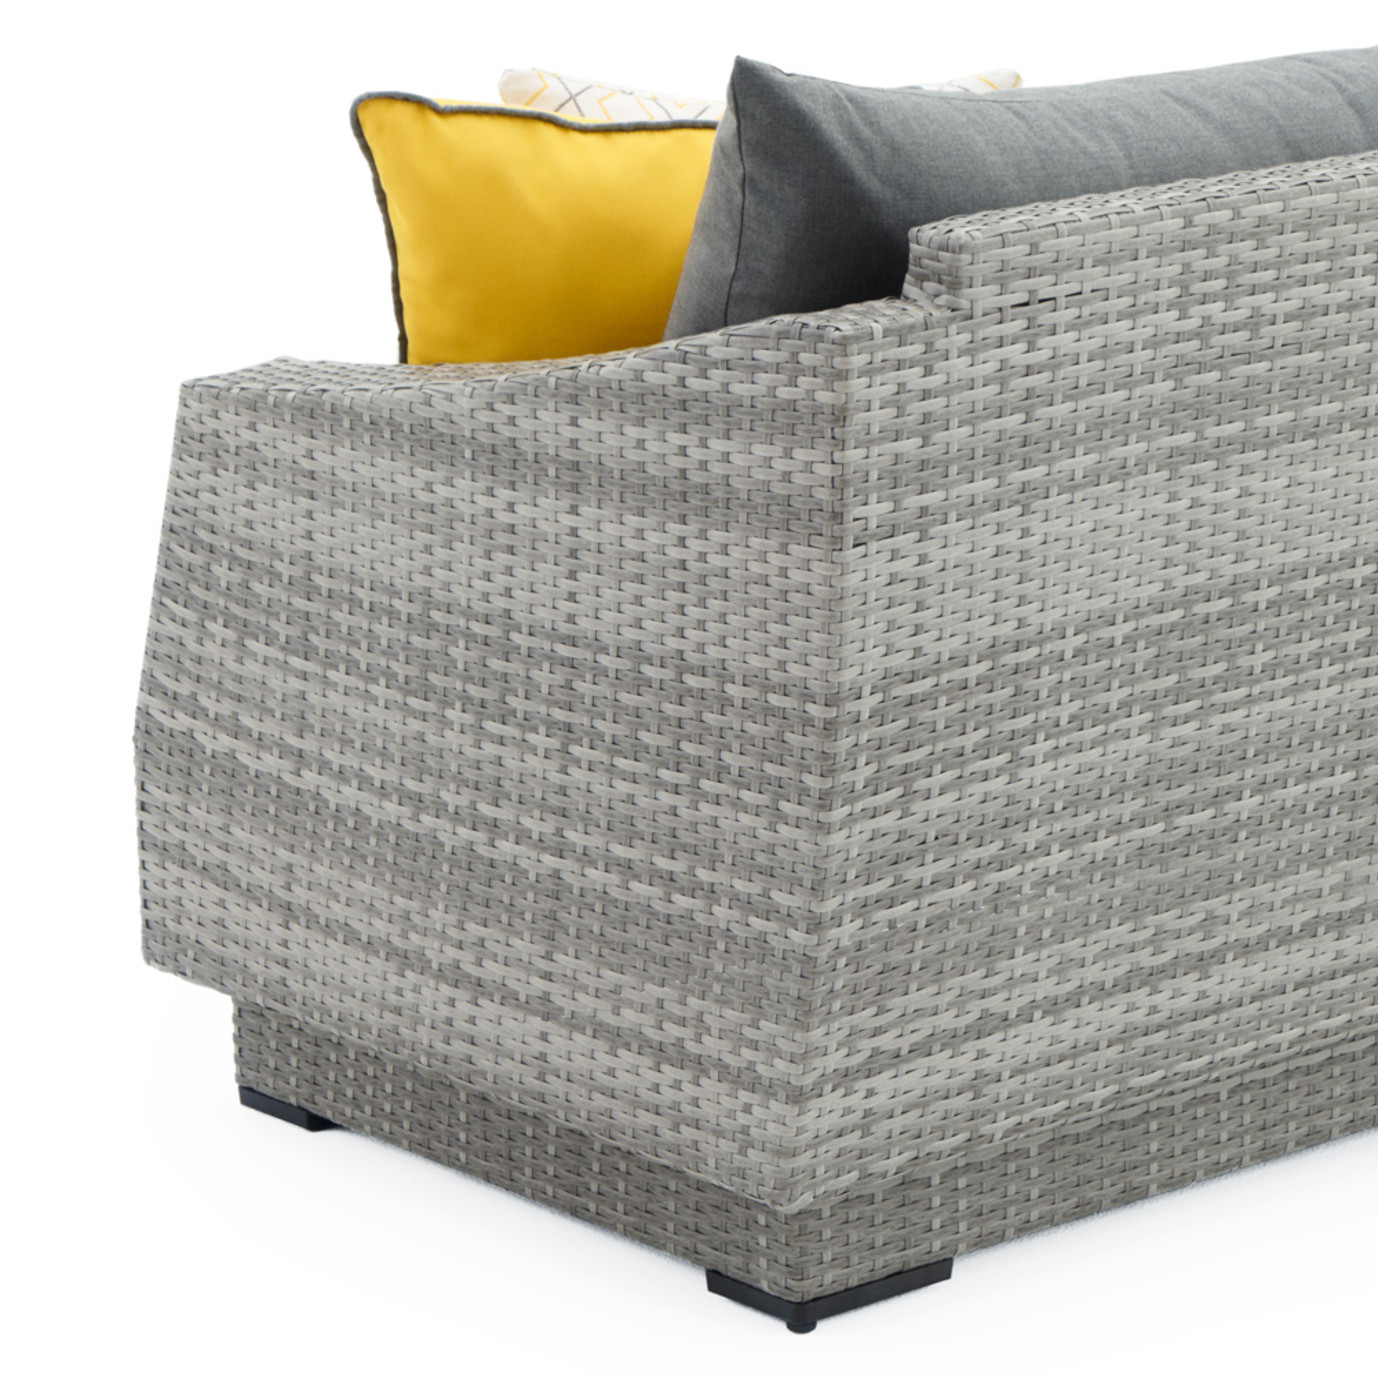 Cannes™ Loveseat & Ottoman - Sunflower Yellow